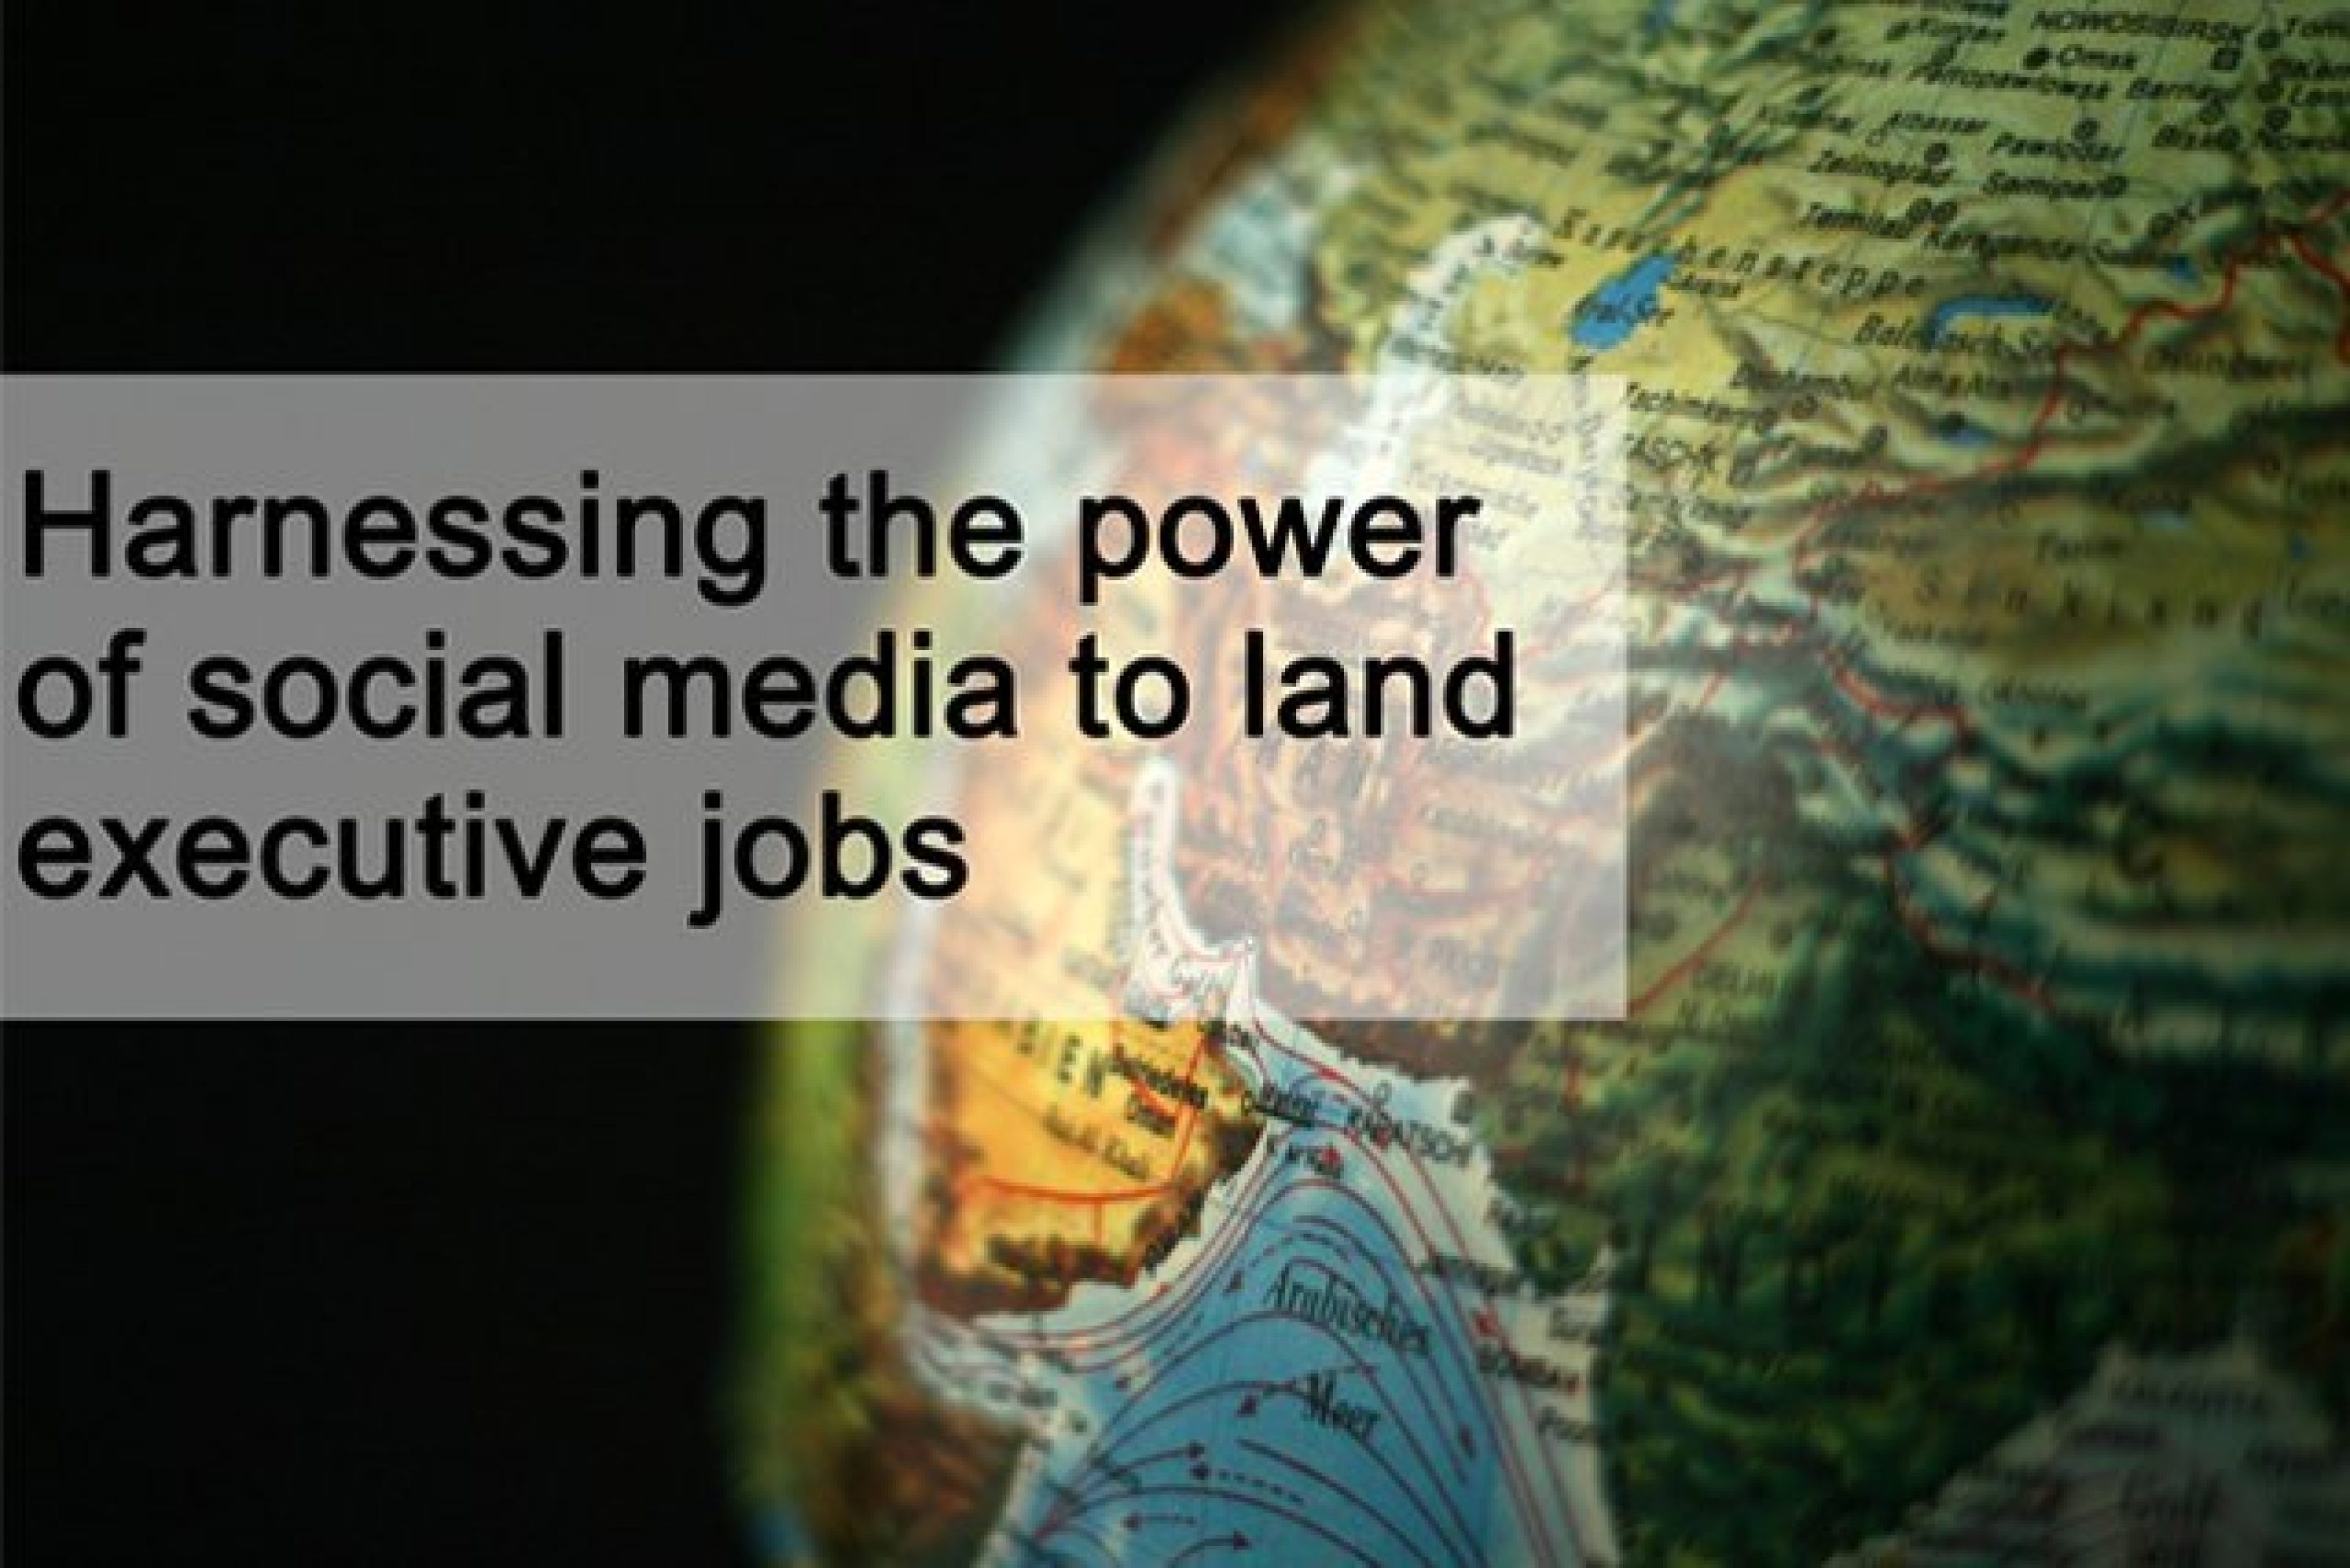 Harnessing the power of social media to land executive jobs